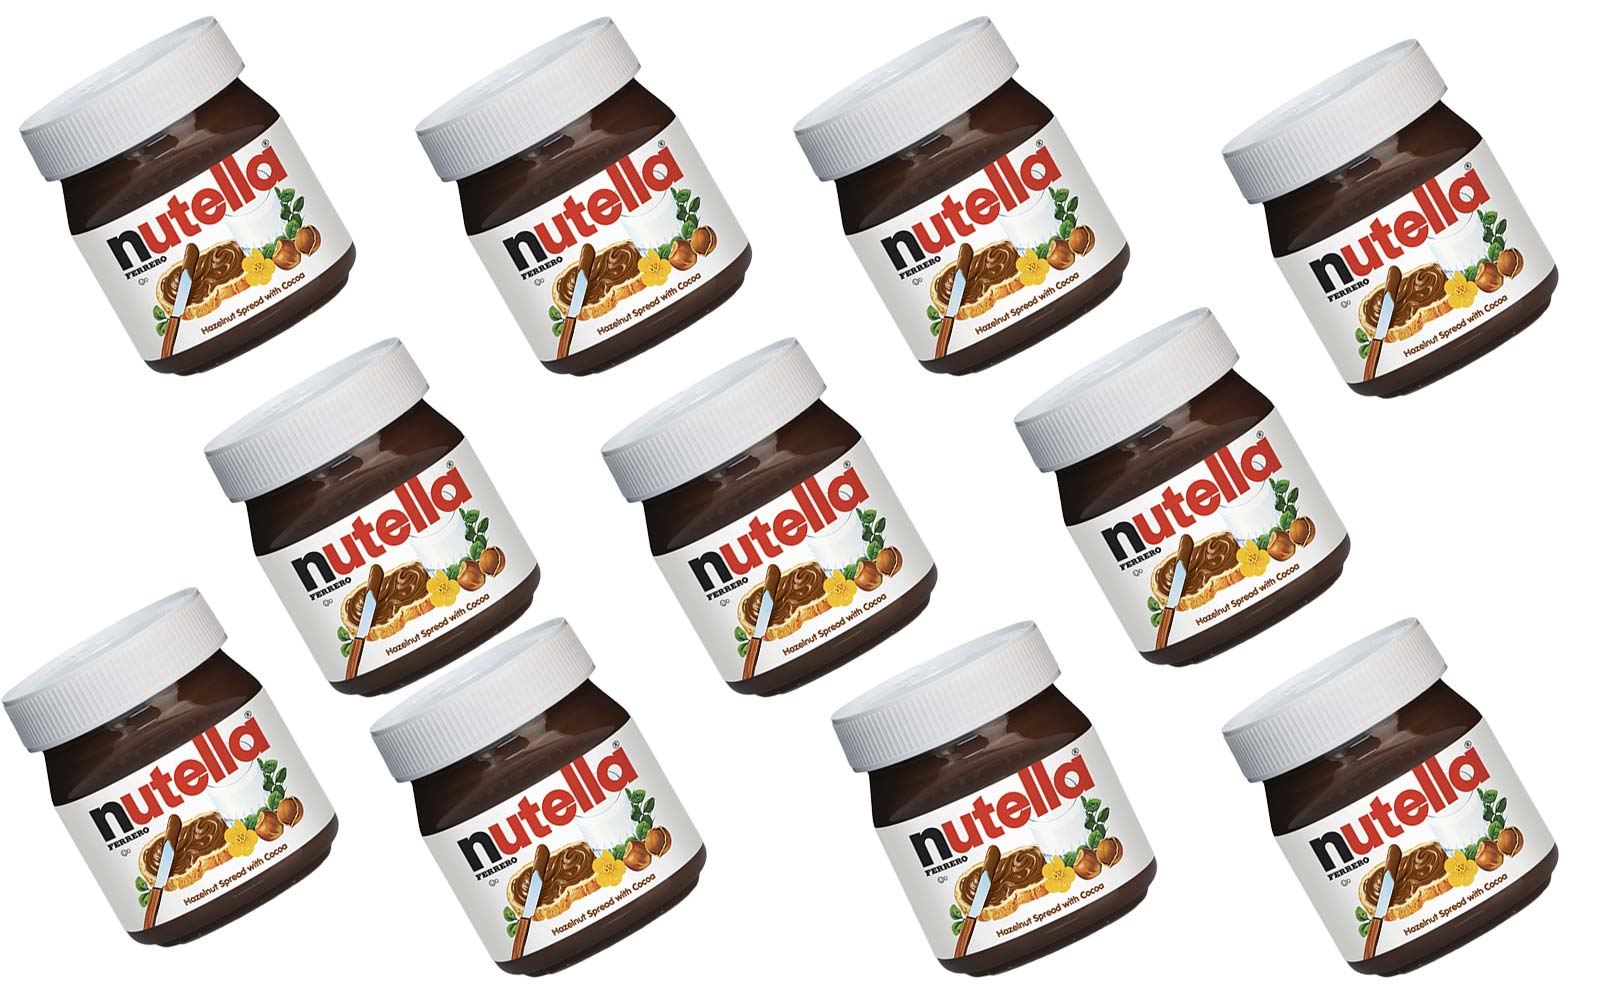 Nutella Is About to Give Away Hundreds of Jars for Free — Here's How to Get One